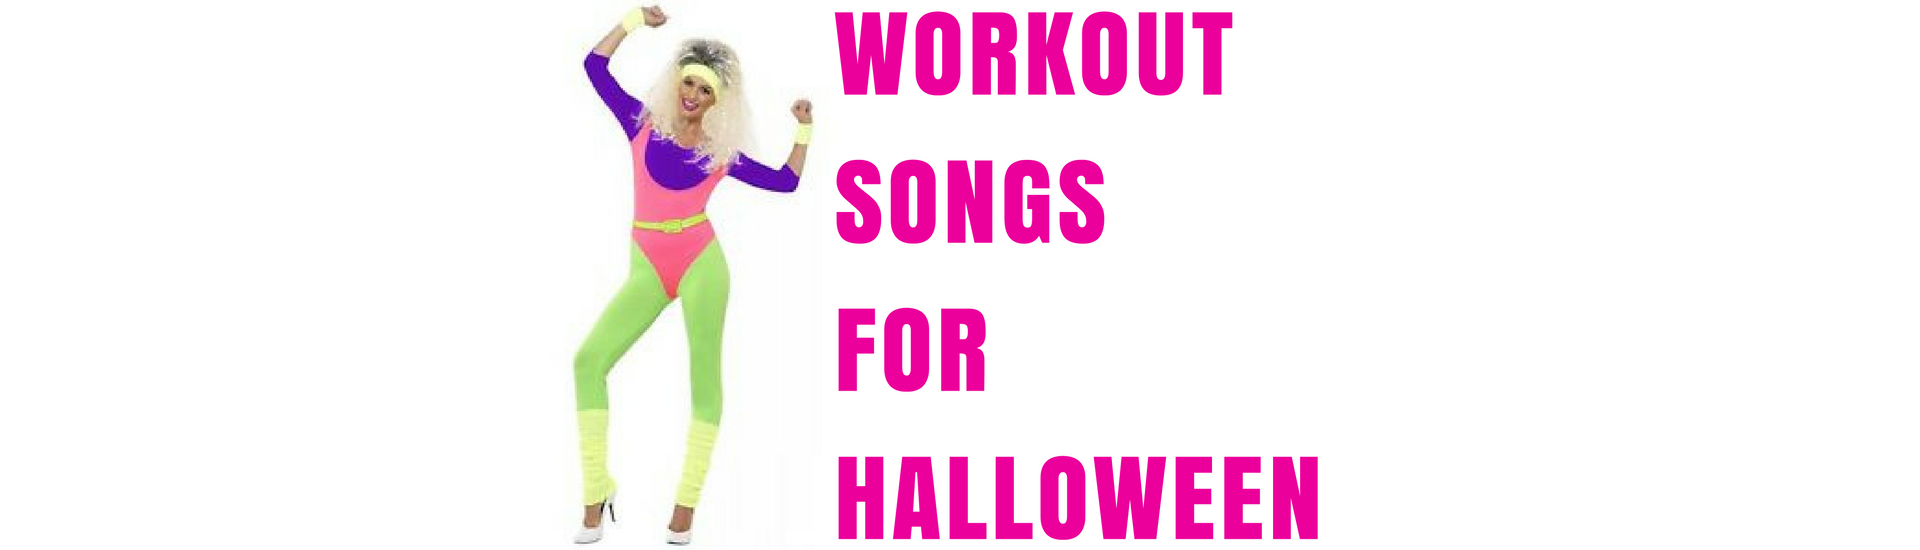 Workout Songs for Halloween